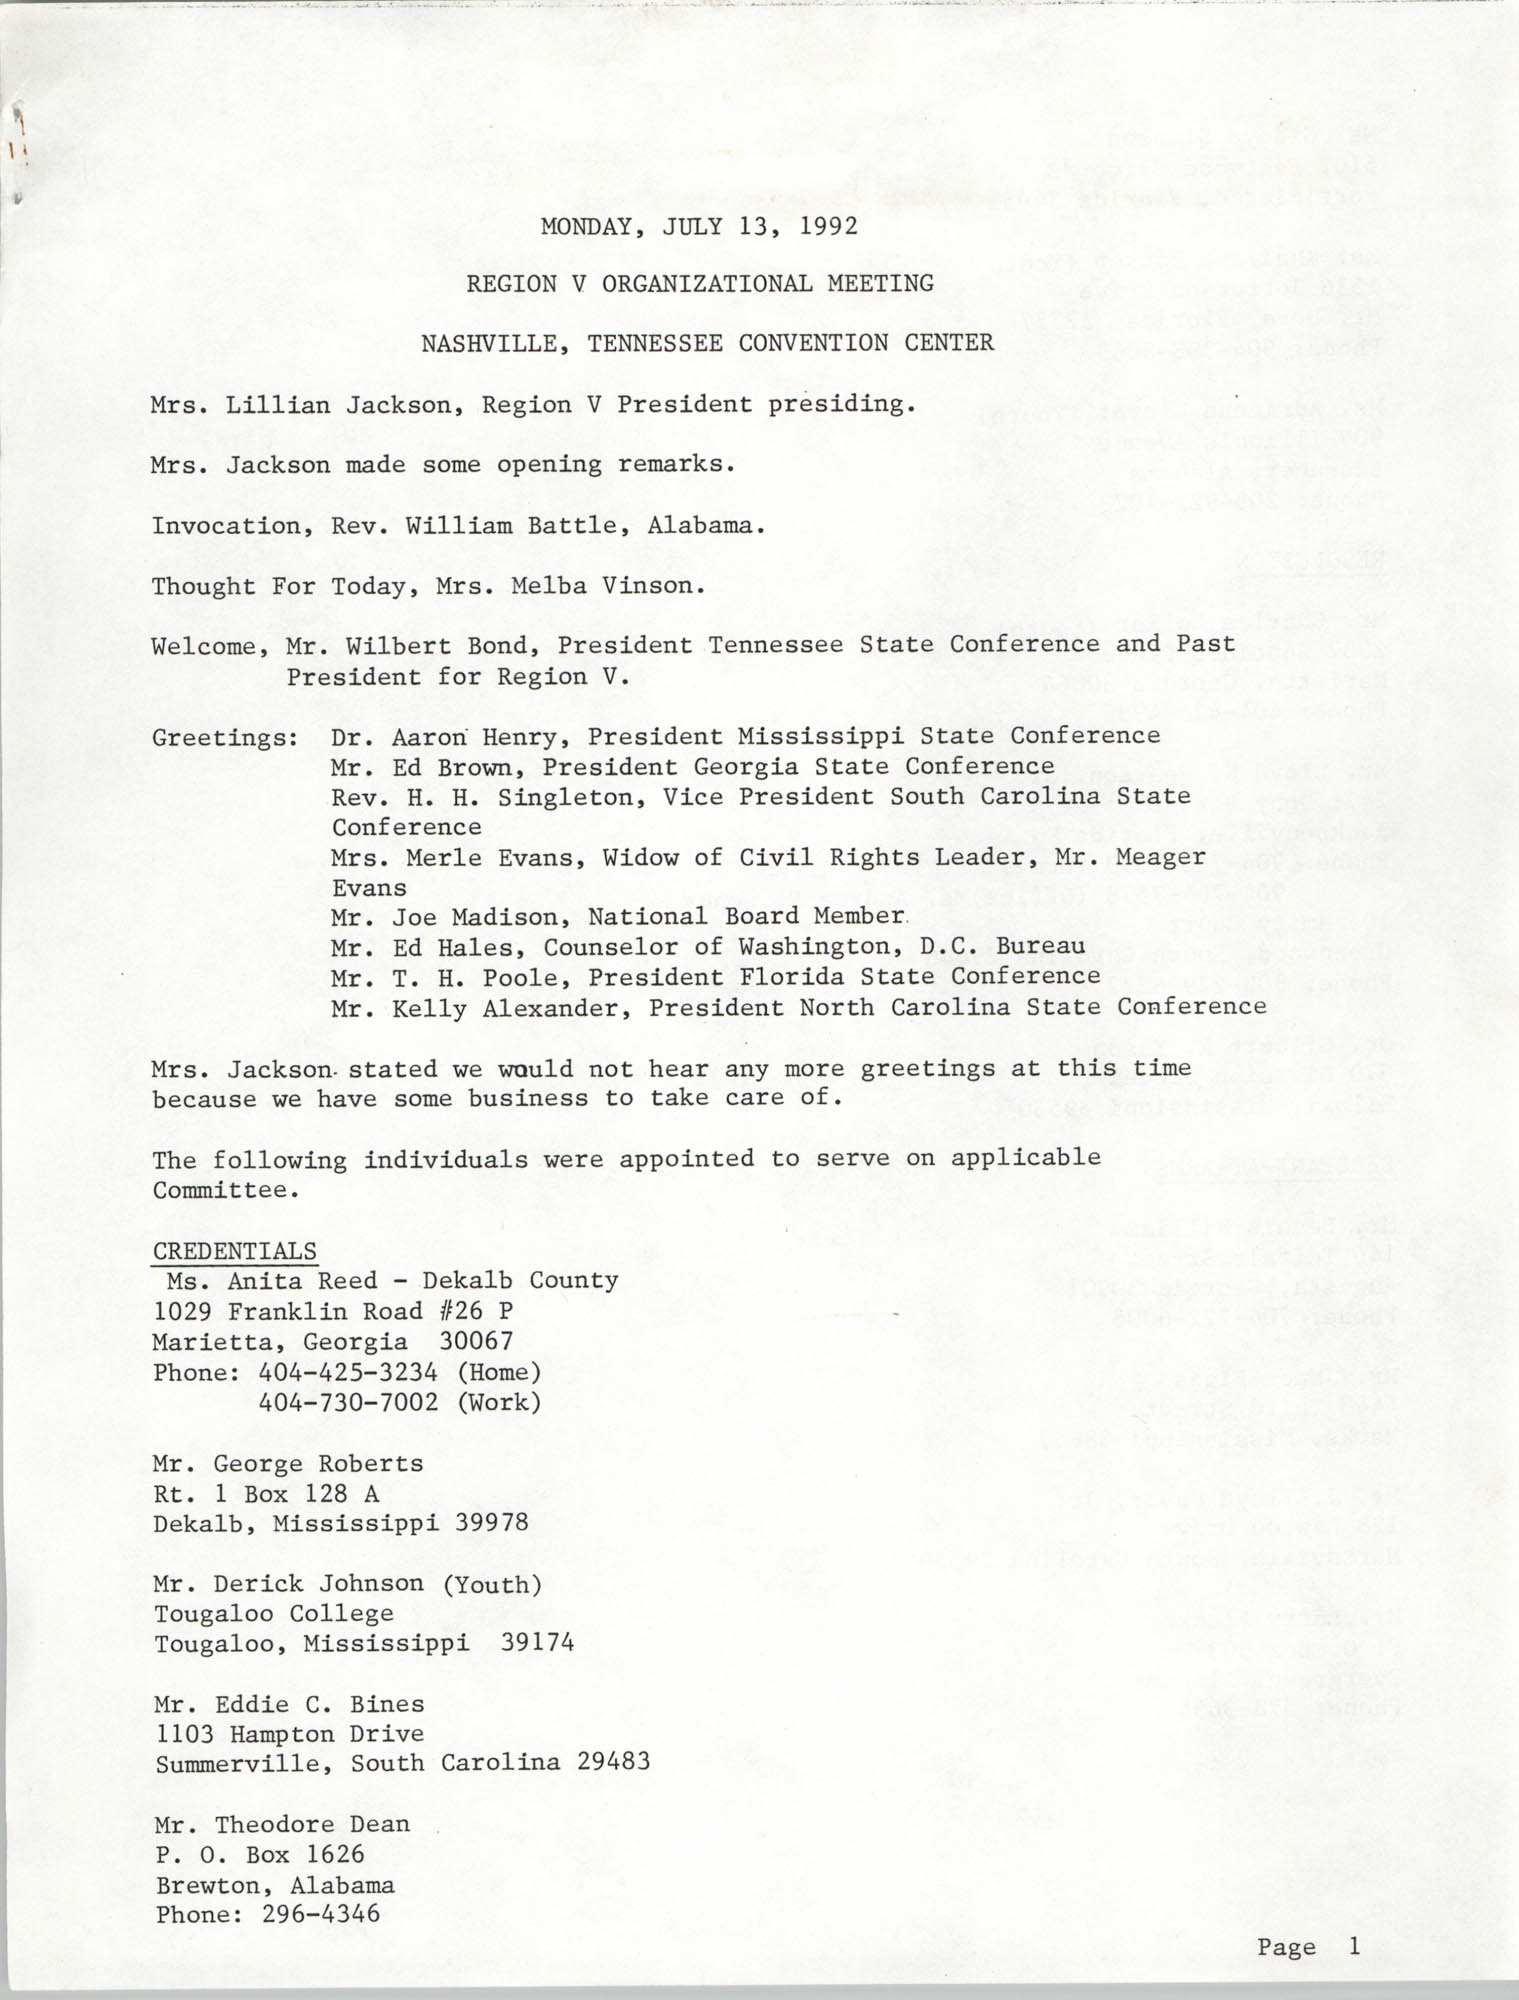 Region V Organizational Meeting Minutes, July 13, 1992